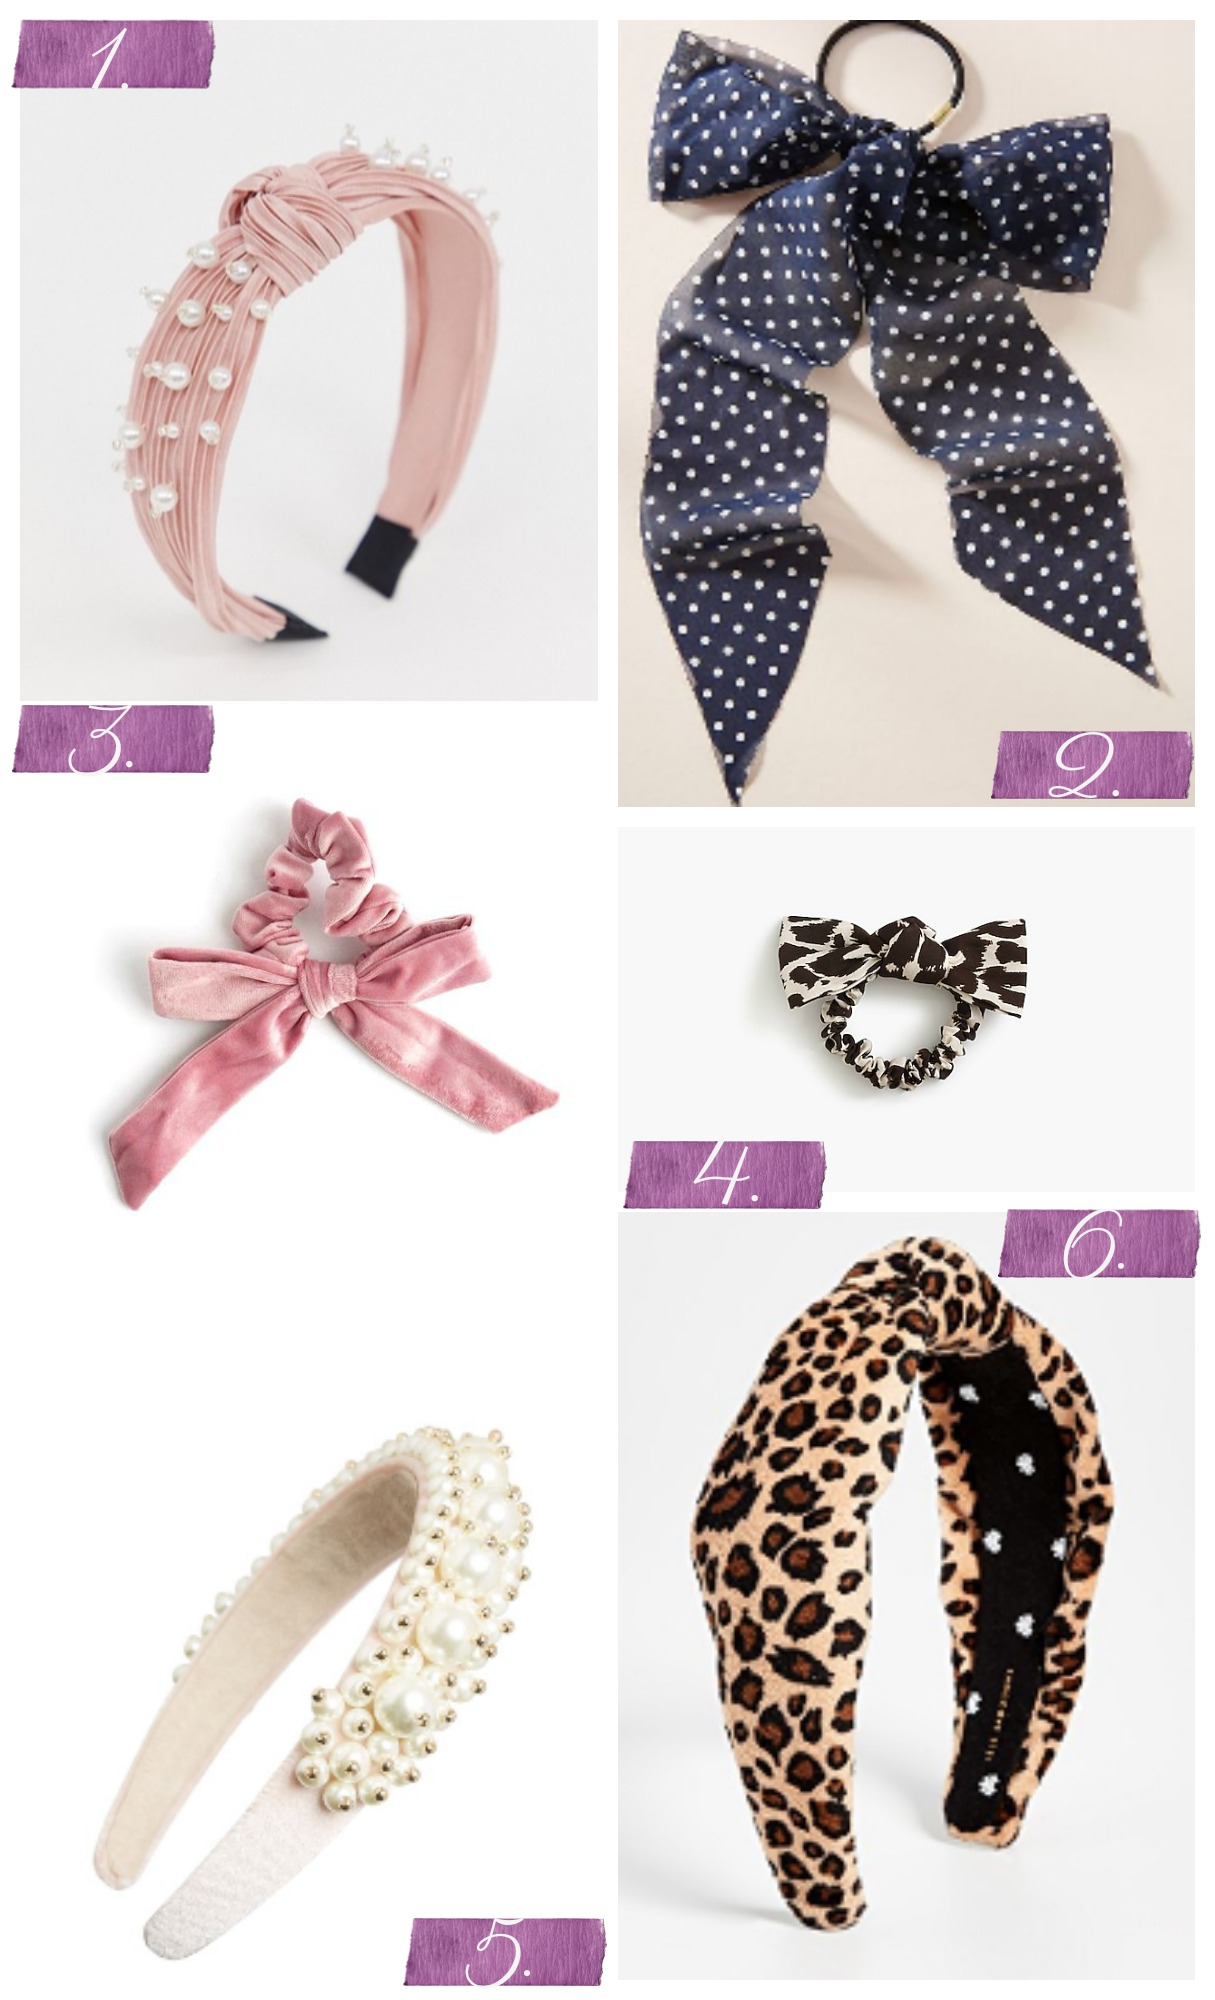 Tuesday's Cravings: Hair Accessories-@headtotoechic-Head to Toe Chic